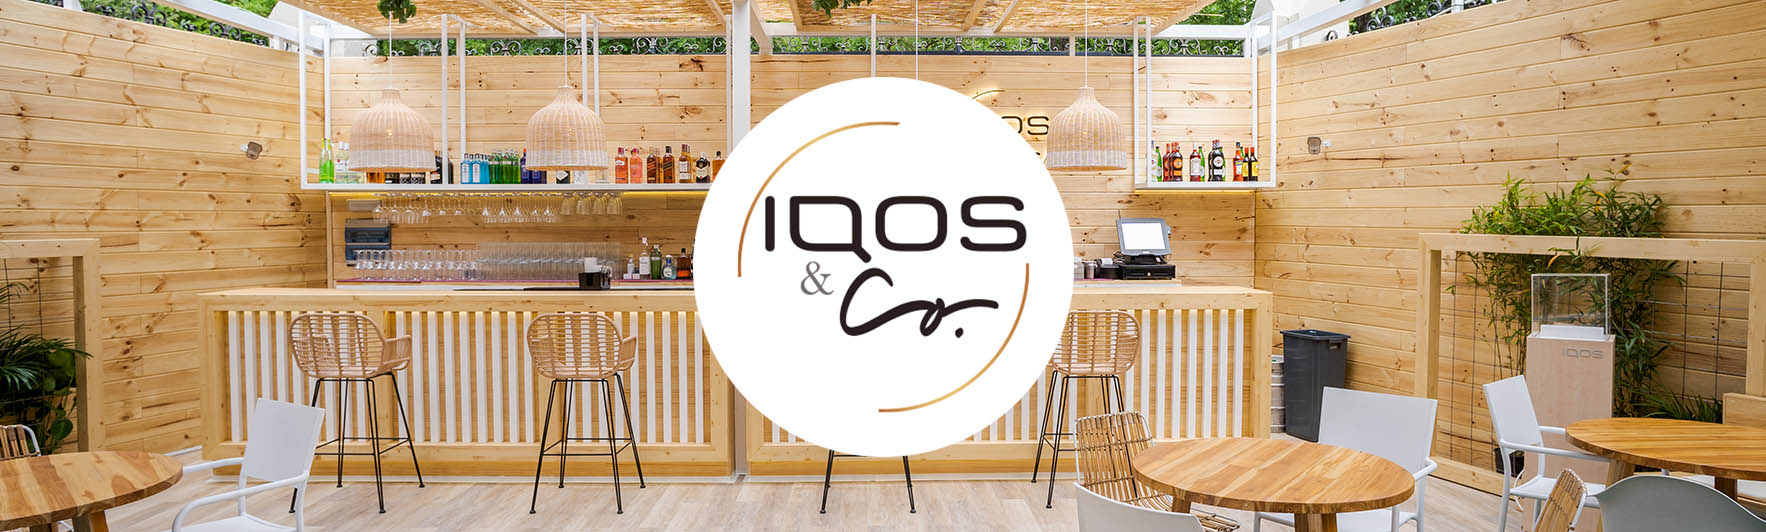 Terraza IQOS and CO con logotipo